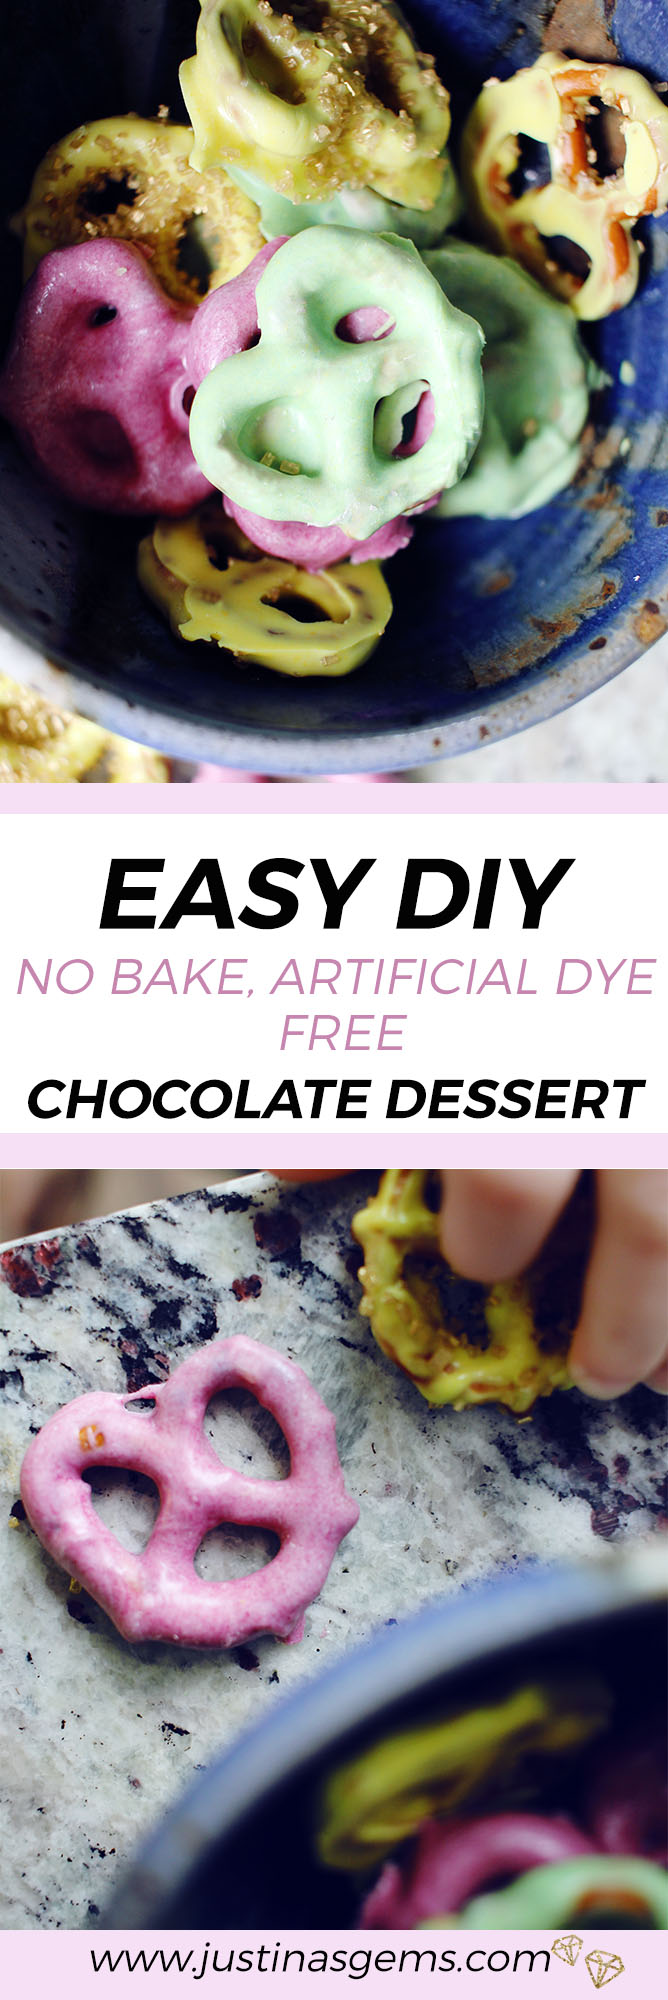 Easy DIY No Bake, Artificial Dye Free Chocolate Dessert